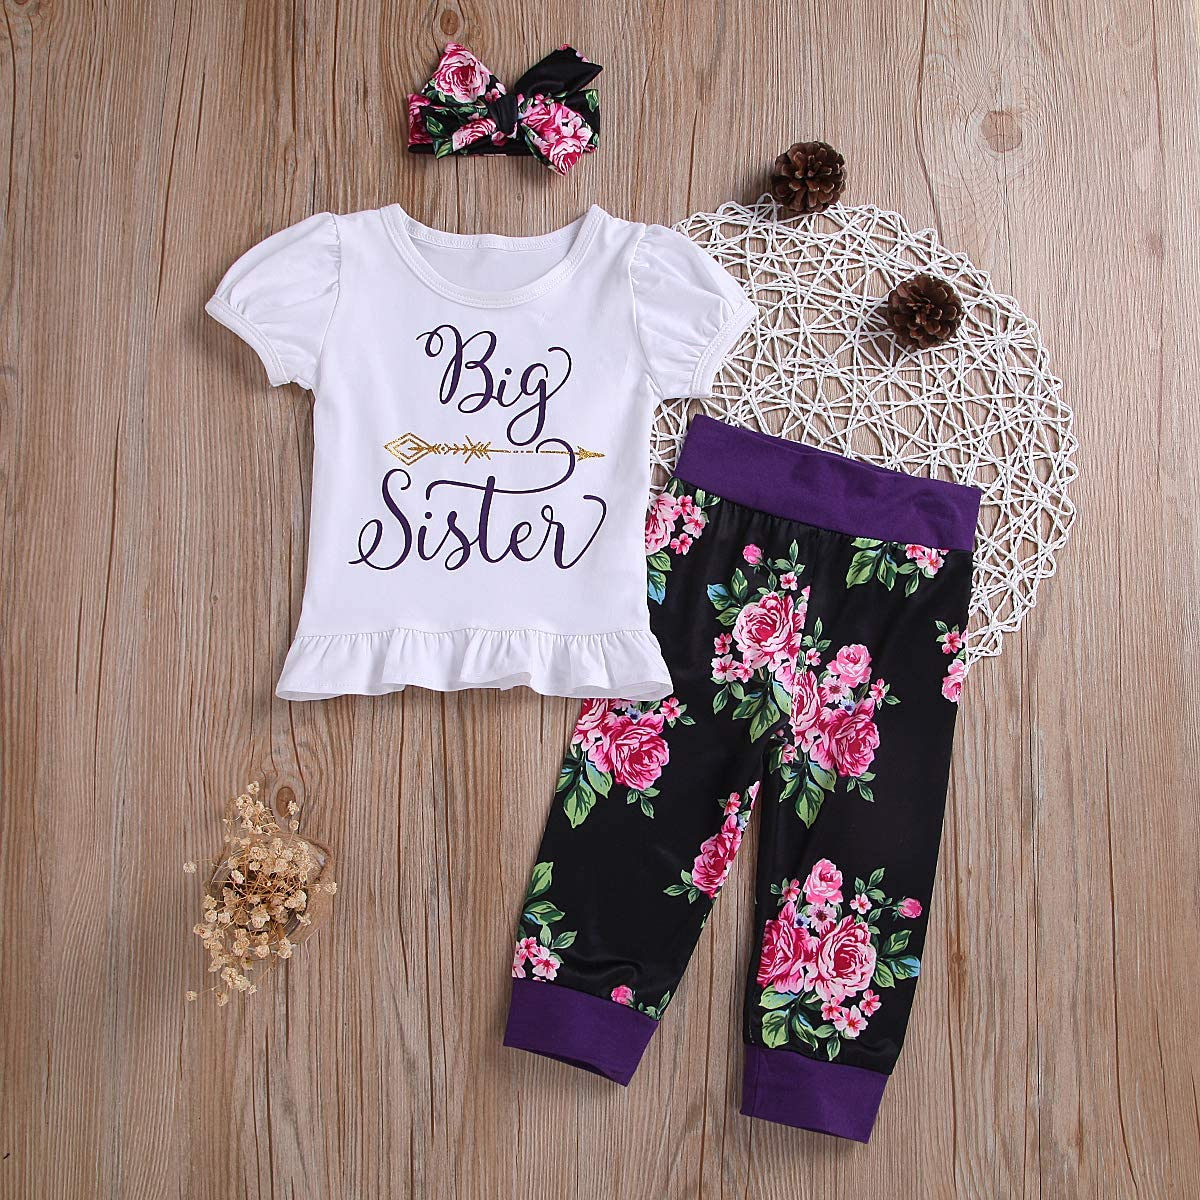 MetCuento Newborn Baby Girl Clothes Ruffle Sleeve Romper Tops Floral Pants Headband Outfit Set 3-24 Months